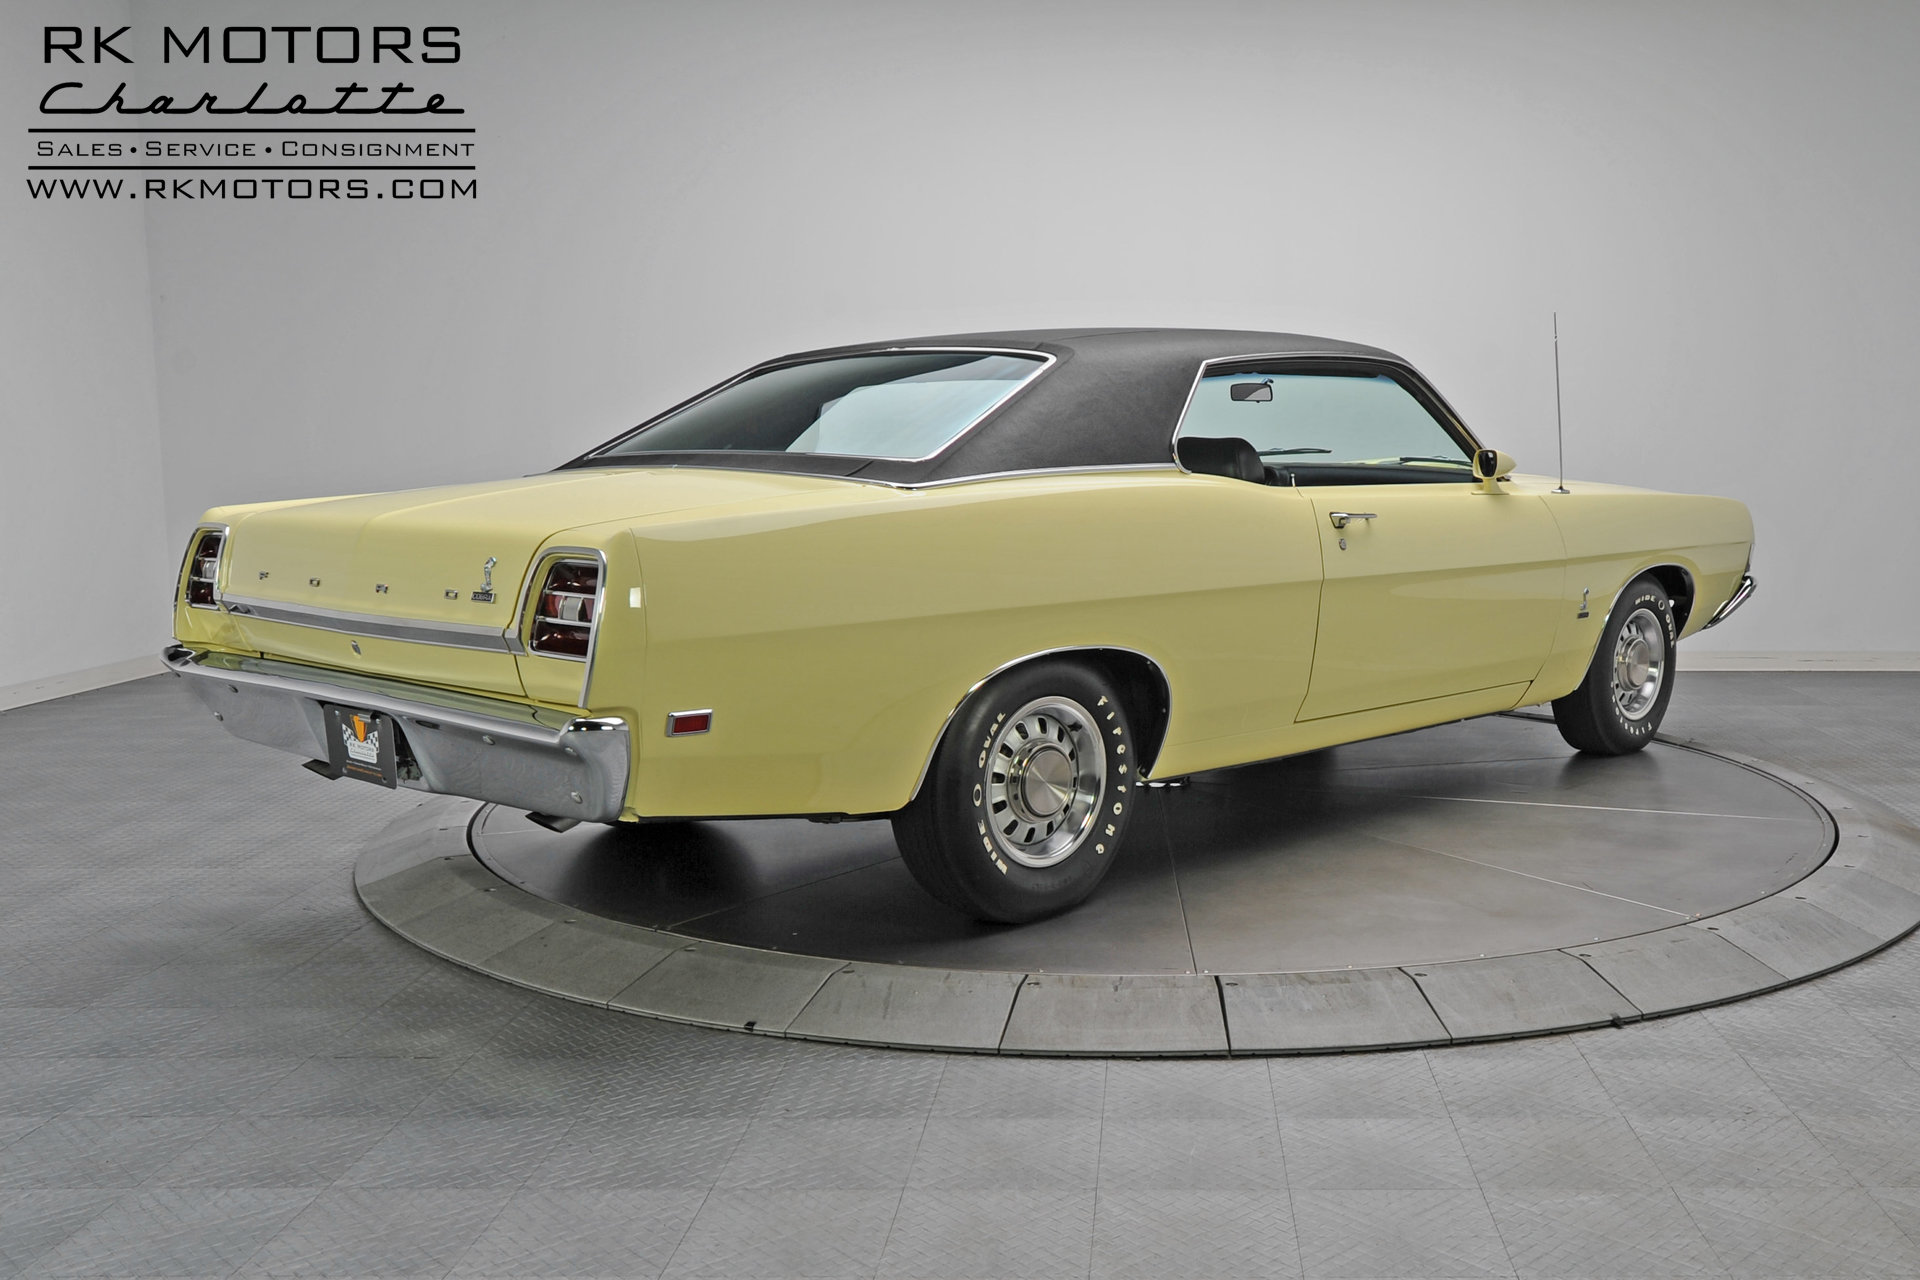 133121 1969 Ford Torino Rk Motors Classic And Performance Cars For Gt 428 Co Jet Sale